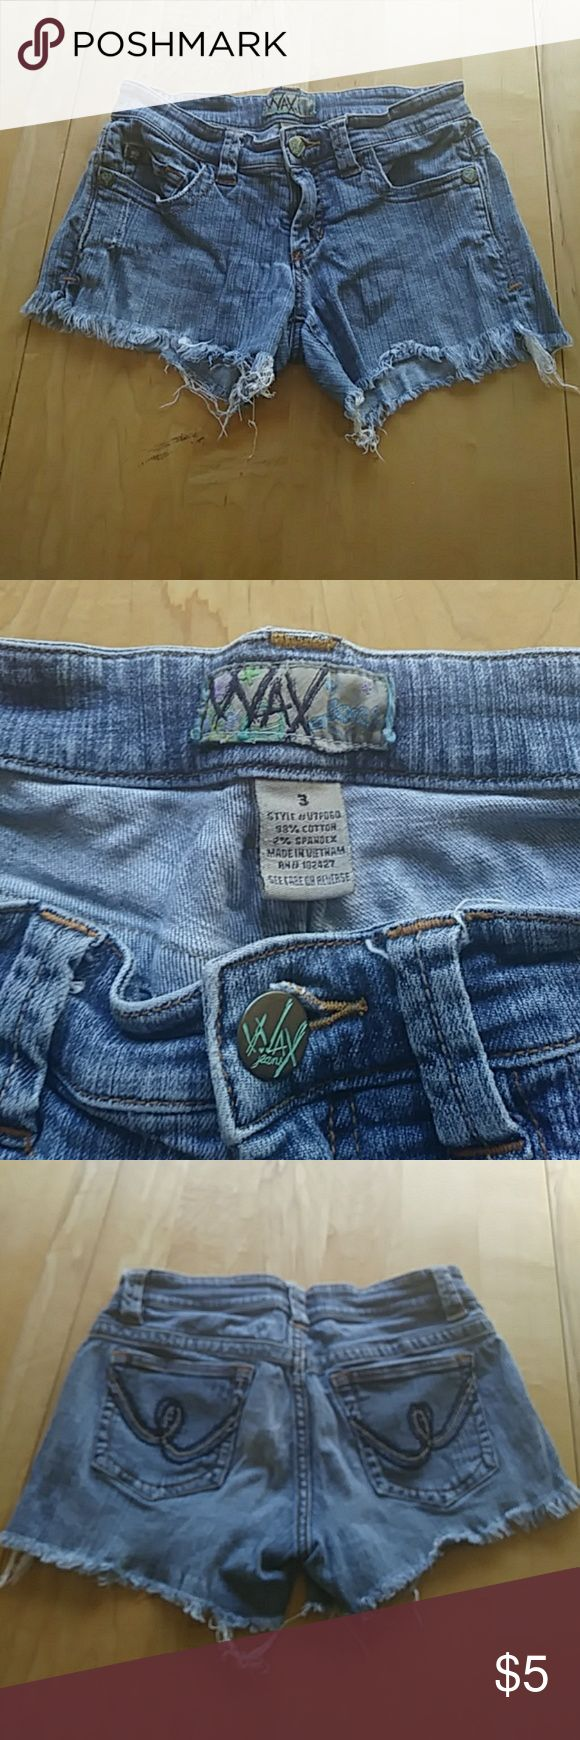 Blue Jeans Short Shorts There's not much to these shorts. I usually wore them while I was getting some sun in my yard , at the beach or by at the swimming pool. And there pretty old I wore them when I was a teen. wax Shorts Jean Shorts